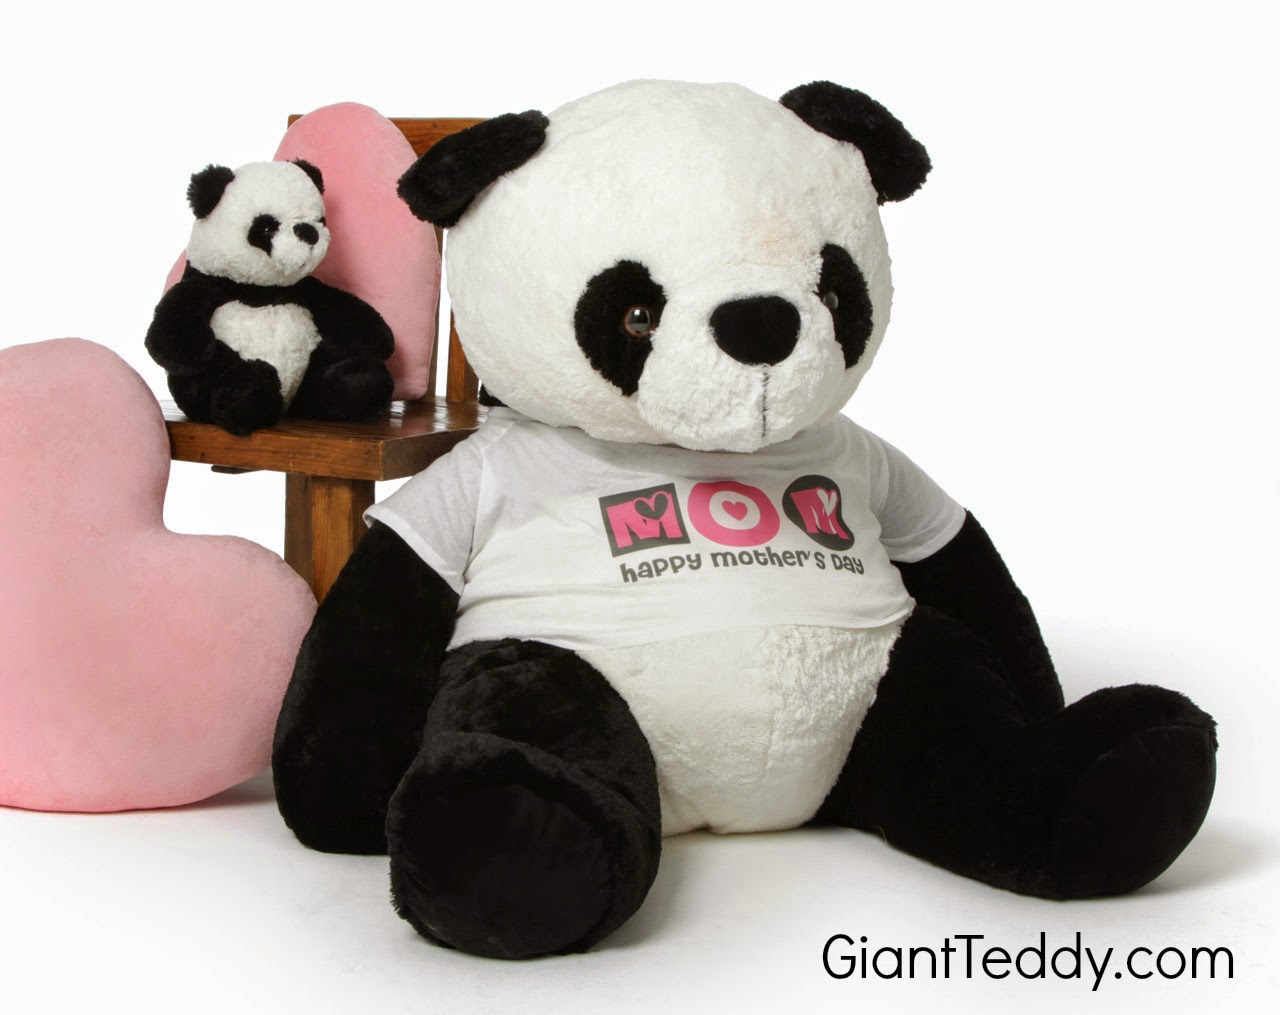 Mother's Day panda bears